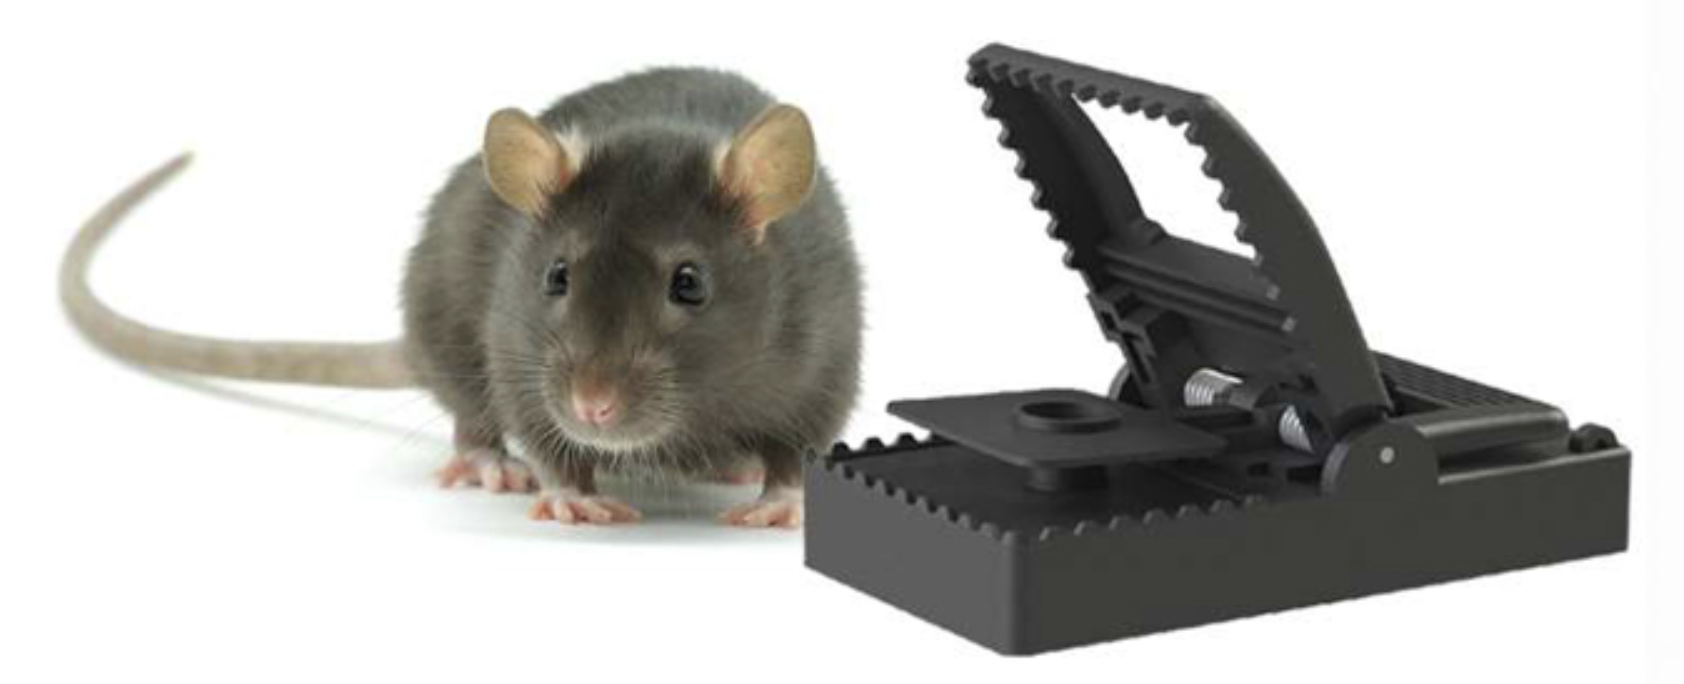 Telit IoT helps build better mousetrap